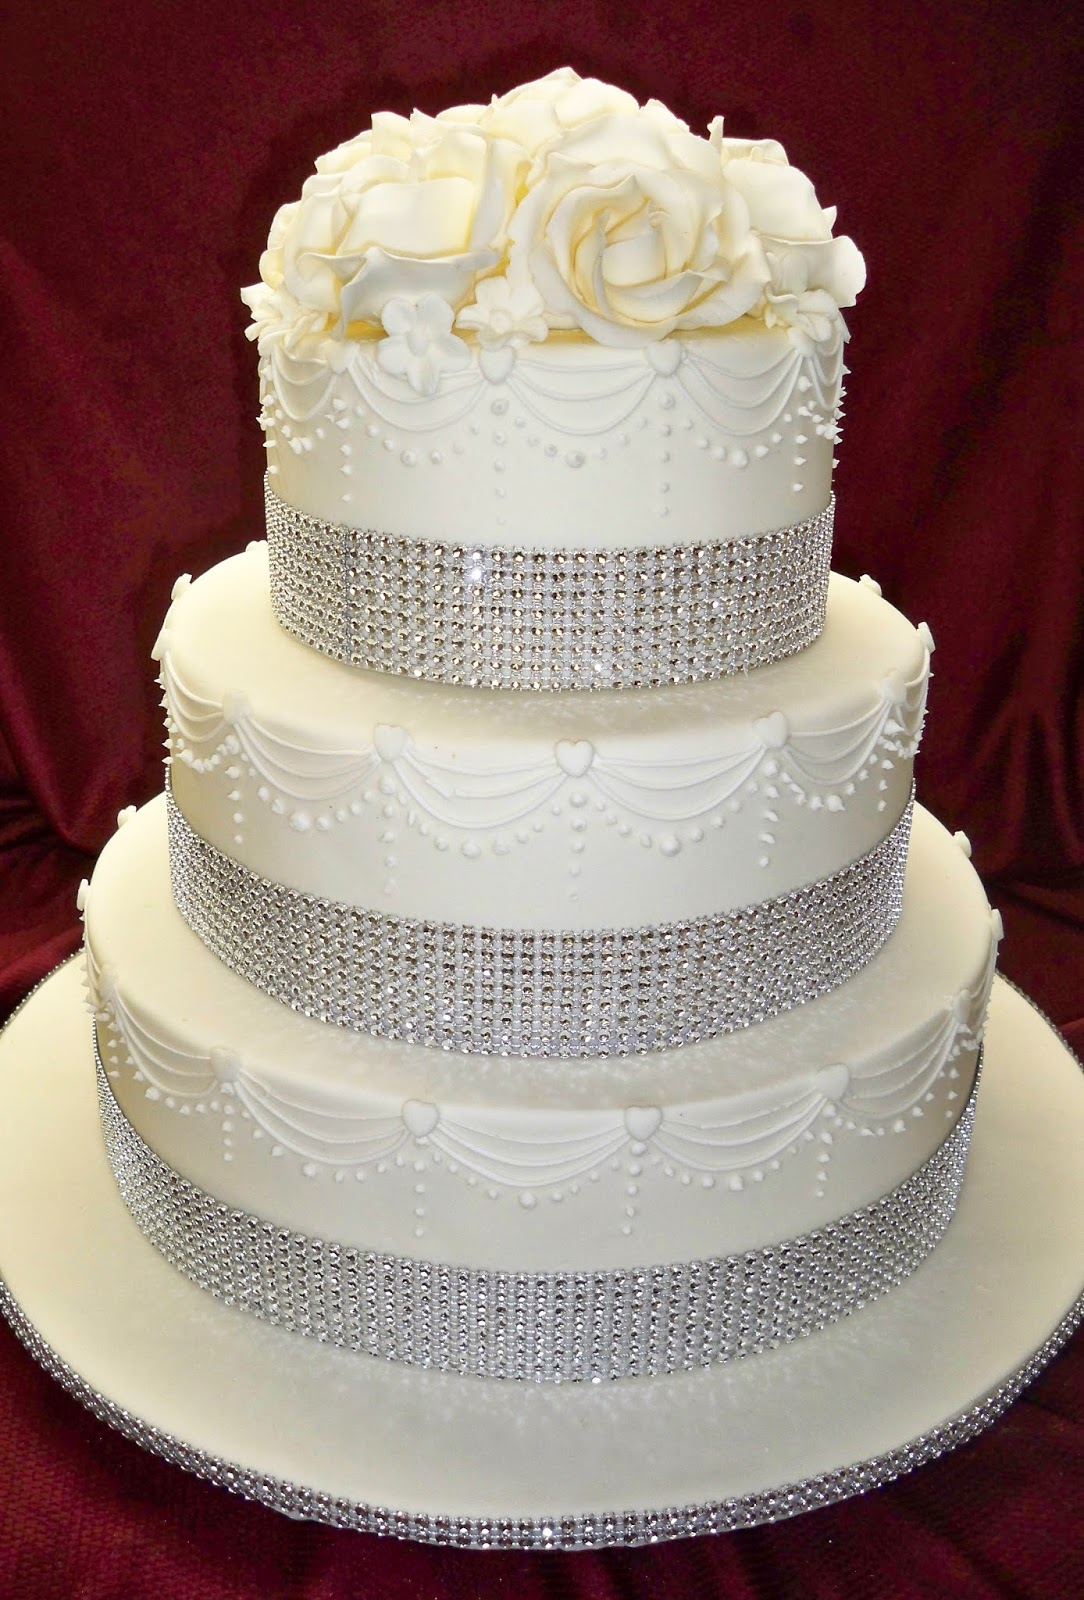 White roses and diamond ribbon white wedding cake | Elisabeth\'s ...